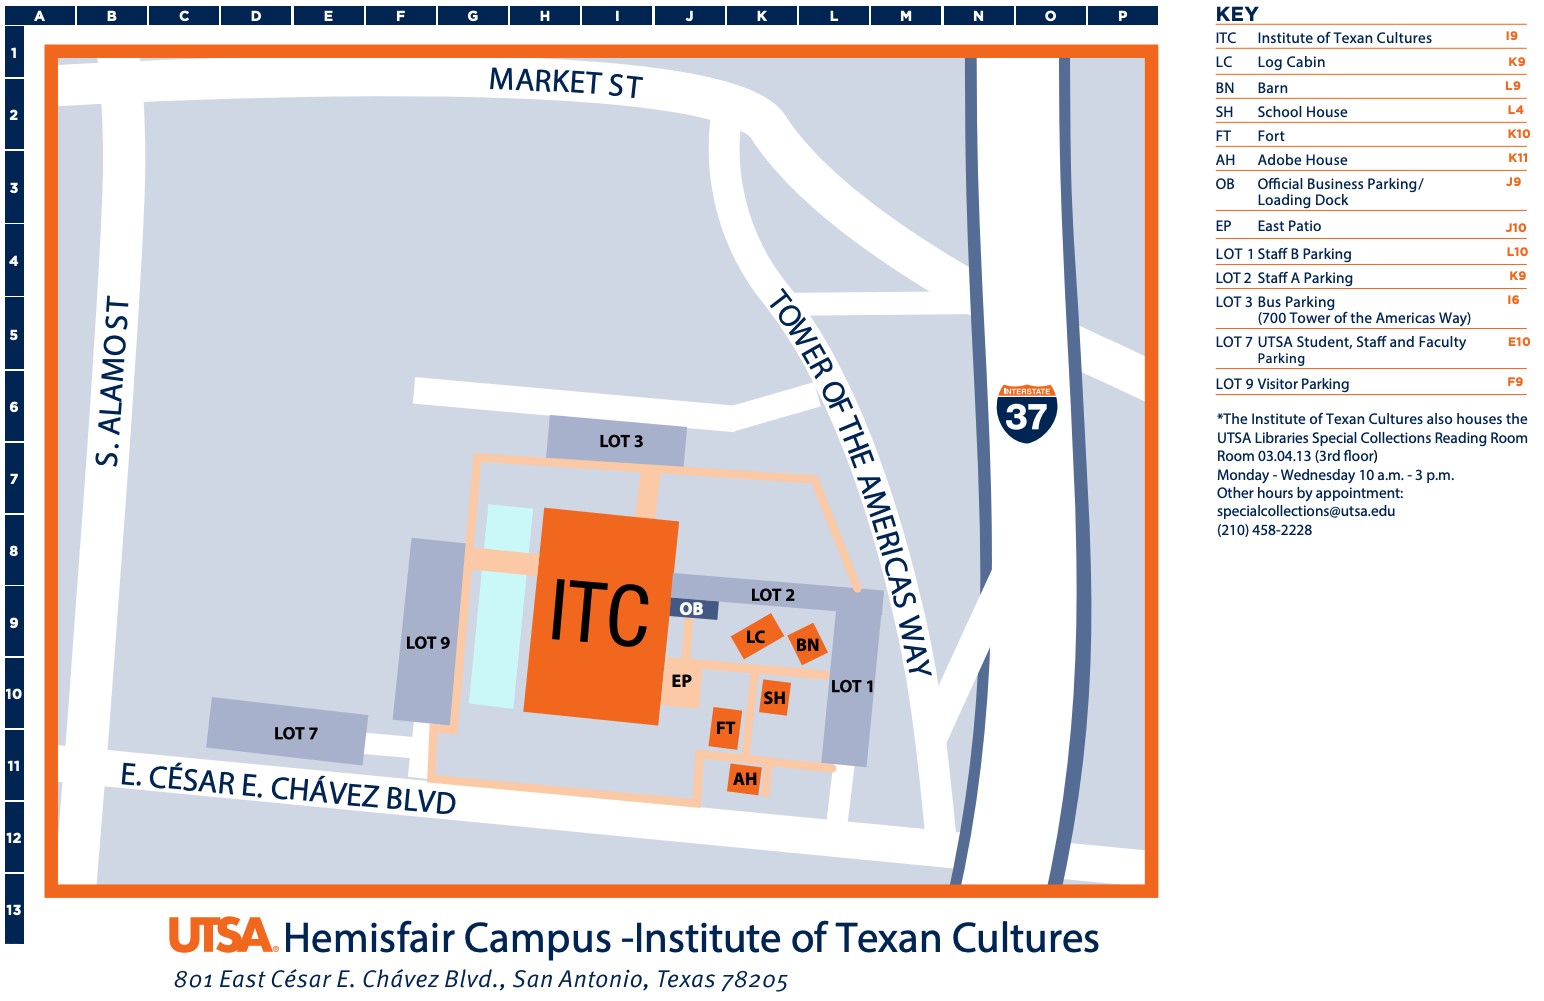 Utsa Downtown Campus Map Hemisfair Campus | UTSA | University of Texas at San Antonio